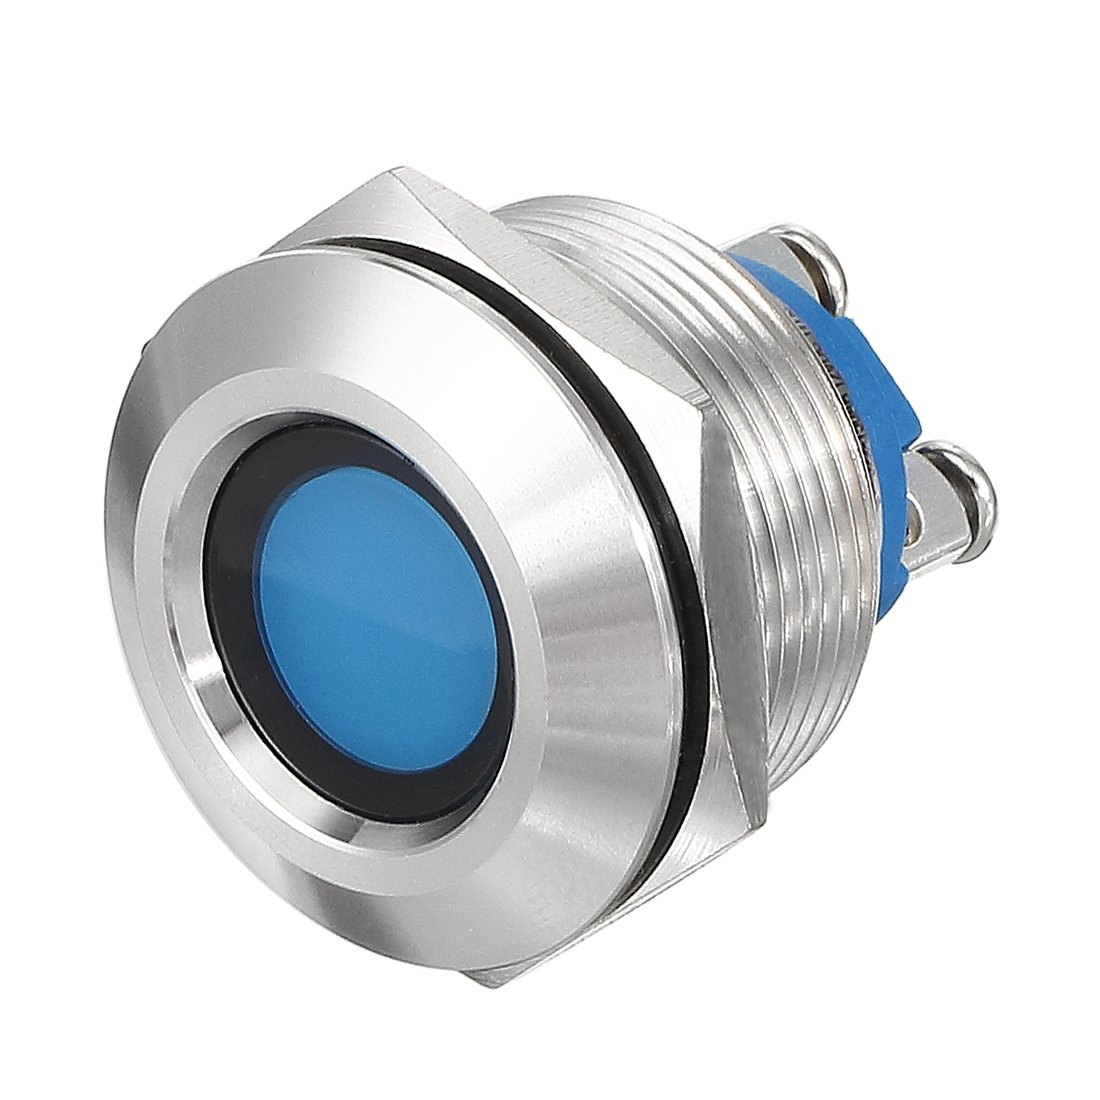 uxcell LED Indicator Light 12V 12mm Blue Metal Shell Pilot Custom Dash Signal Lamp Concave Head